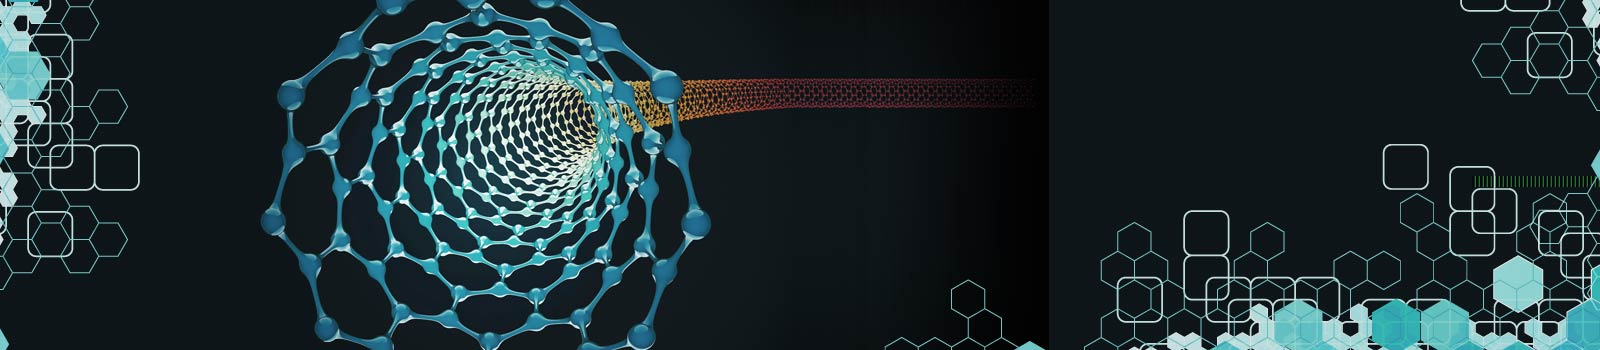 Nano-C Products: Carbon Nanotubes - Materials that power our world